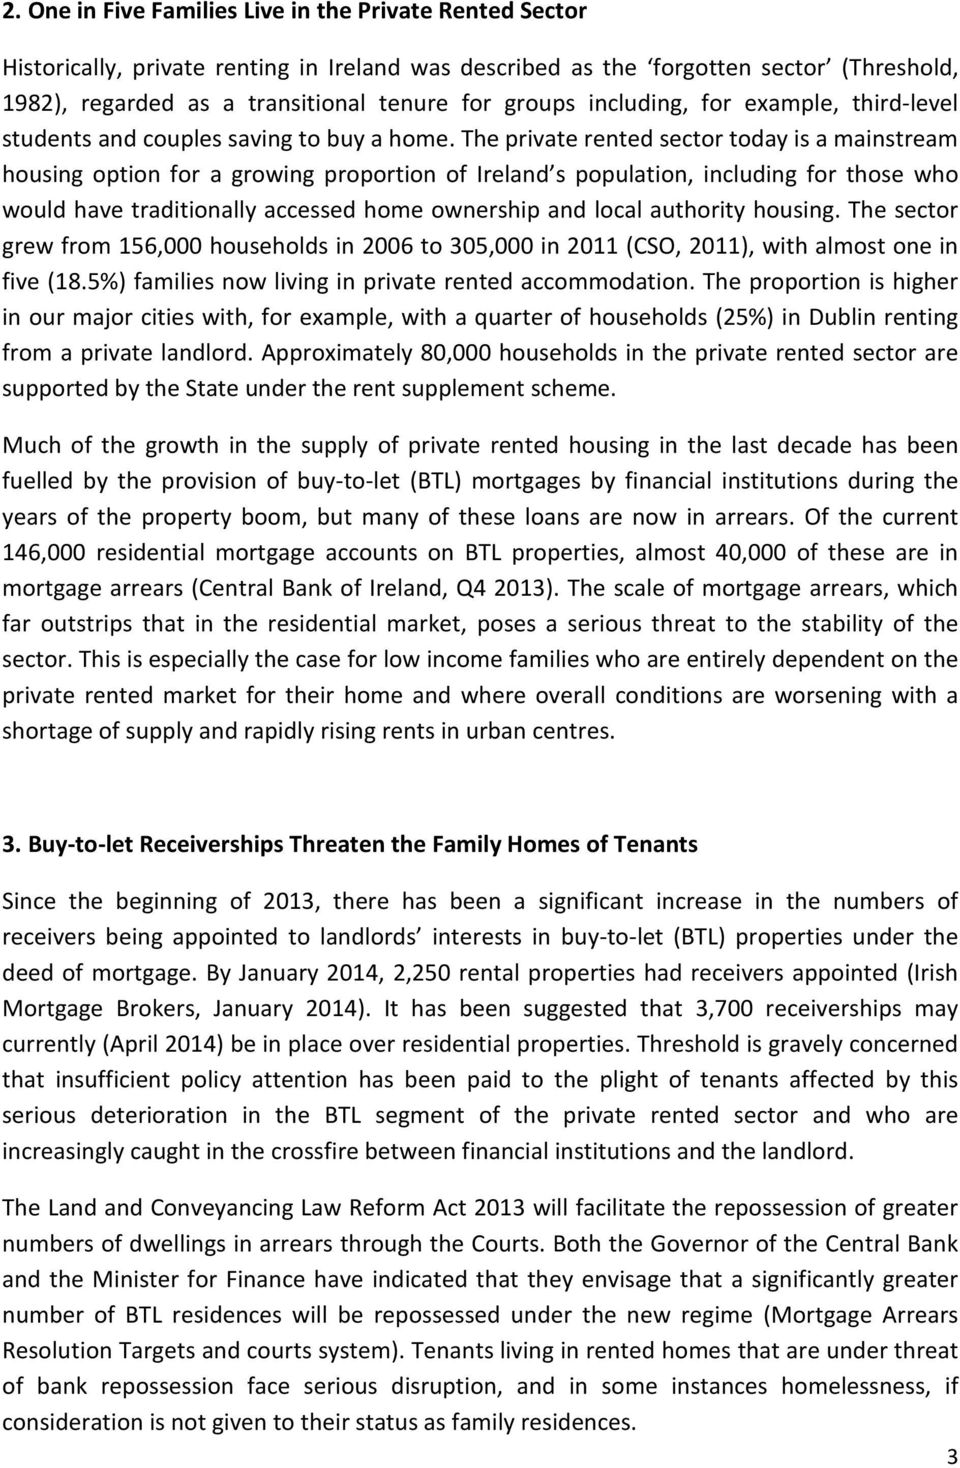 The private rented sector today is a mainstream housing option for a growing proportion of Ireland s population, including for those who would have traditionally accessed home ownership and local